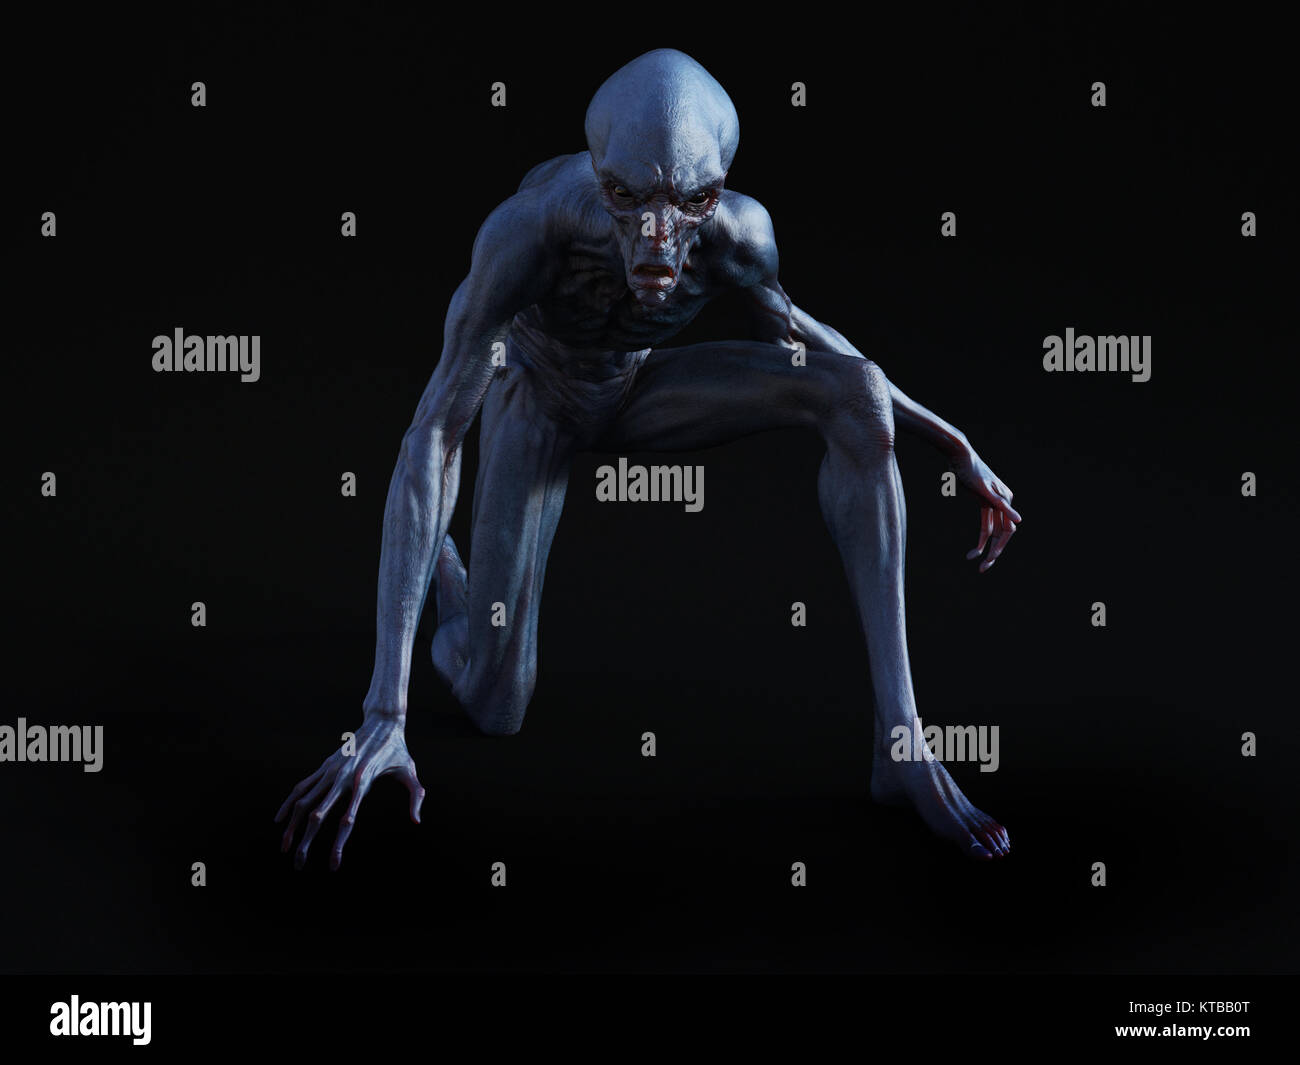 3D rendering of an alien creature crouching. - Stock Image